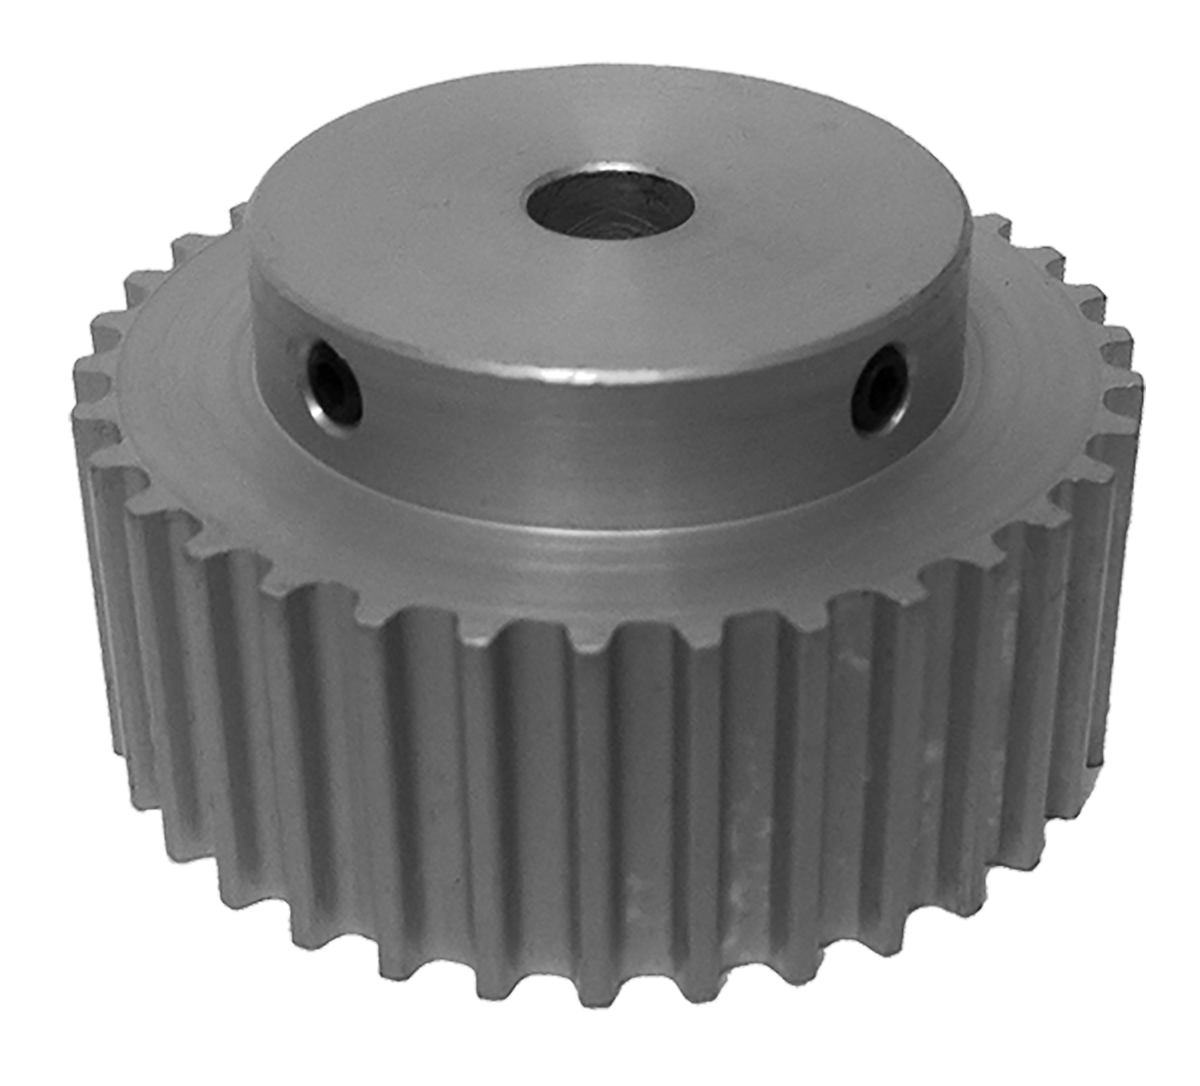 25-5M15M6A8 - Aluminum Powerhouse®HTD® Pulleys